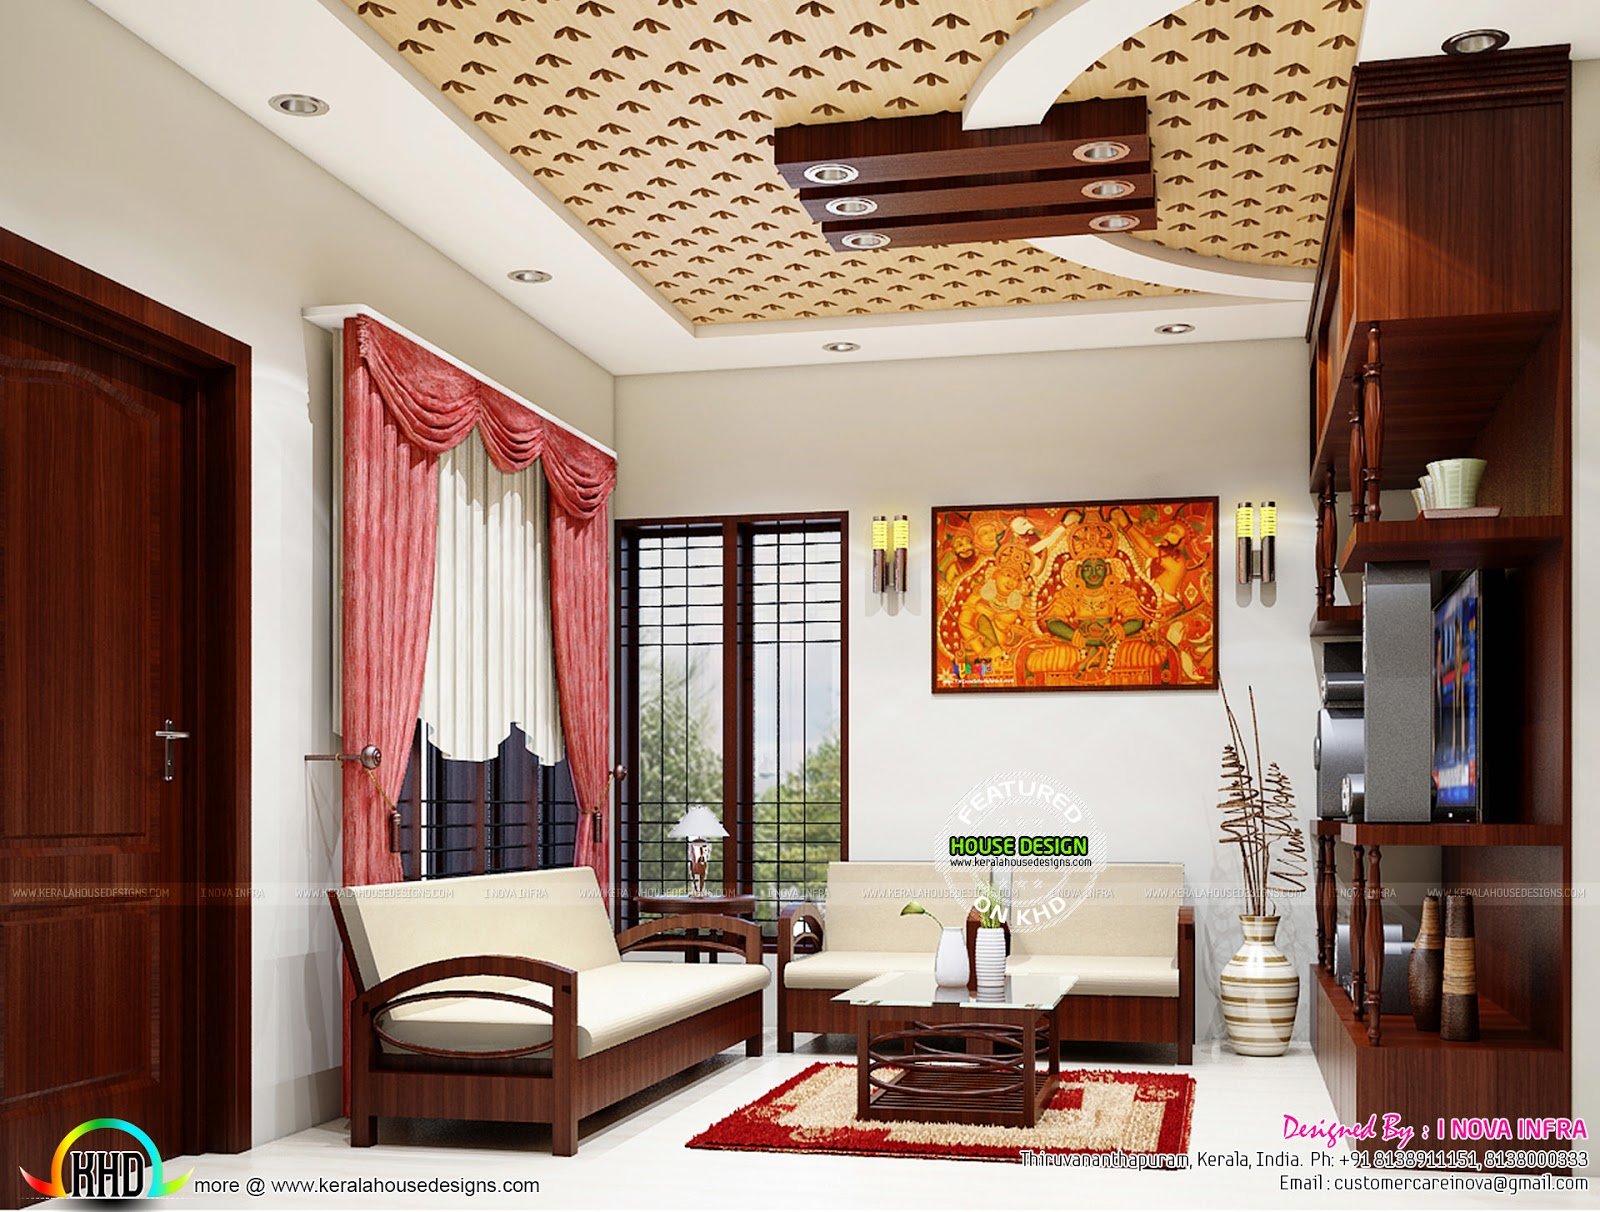 Kerala traditional interiors kerala home design and for Traditional interior design